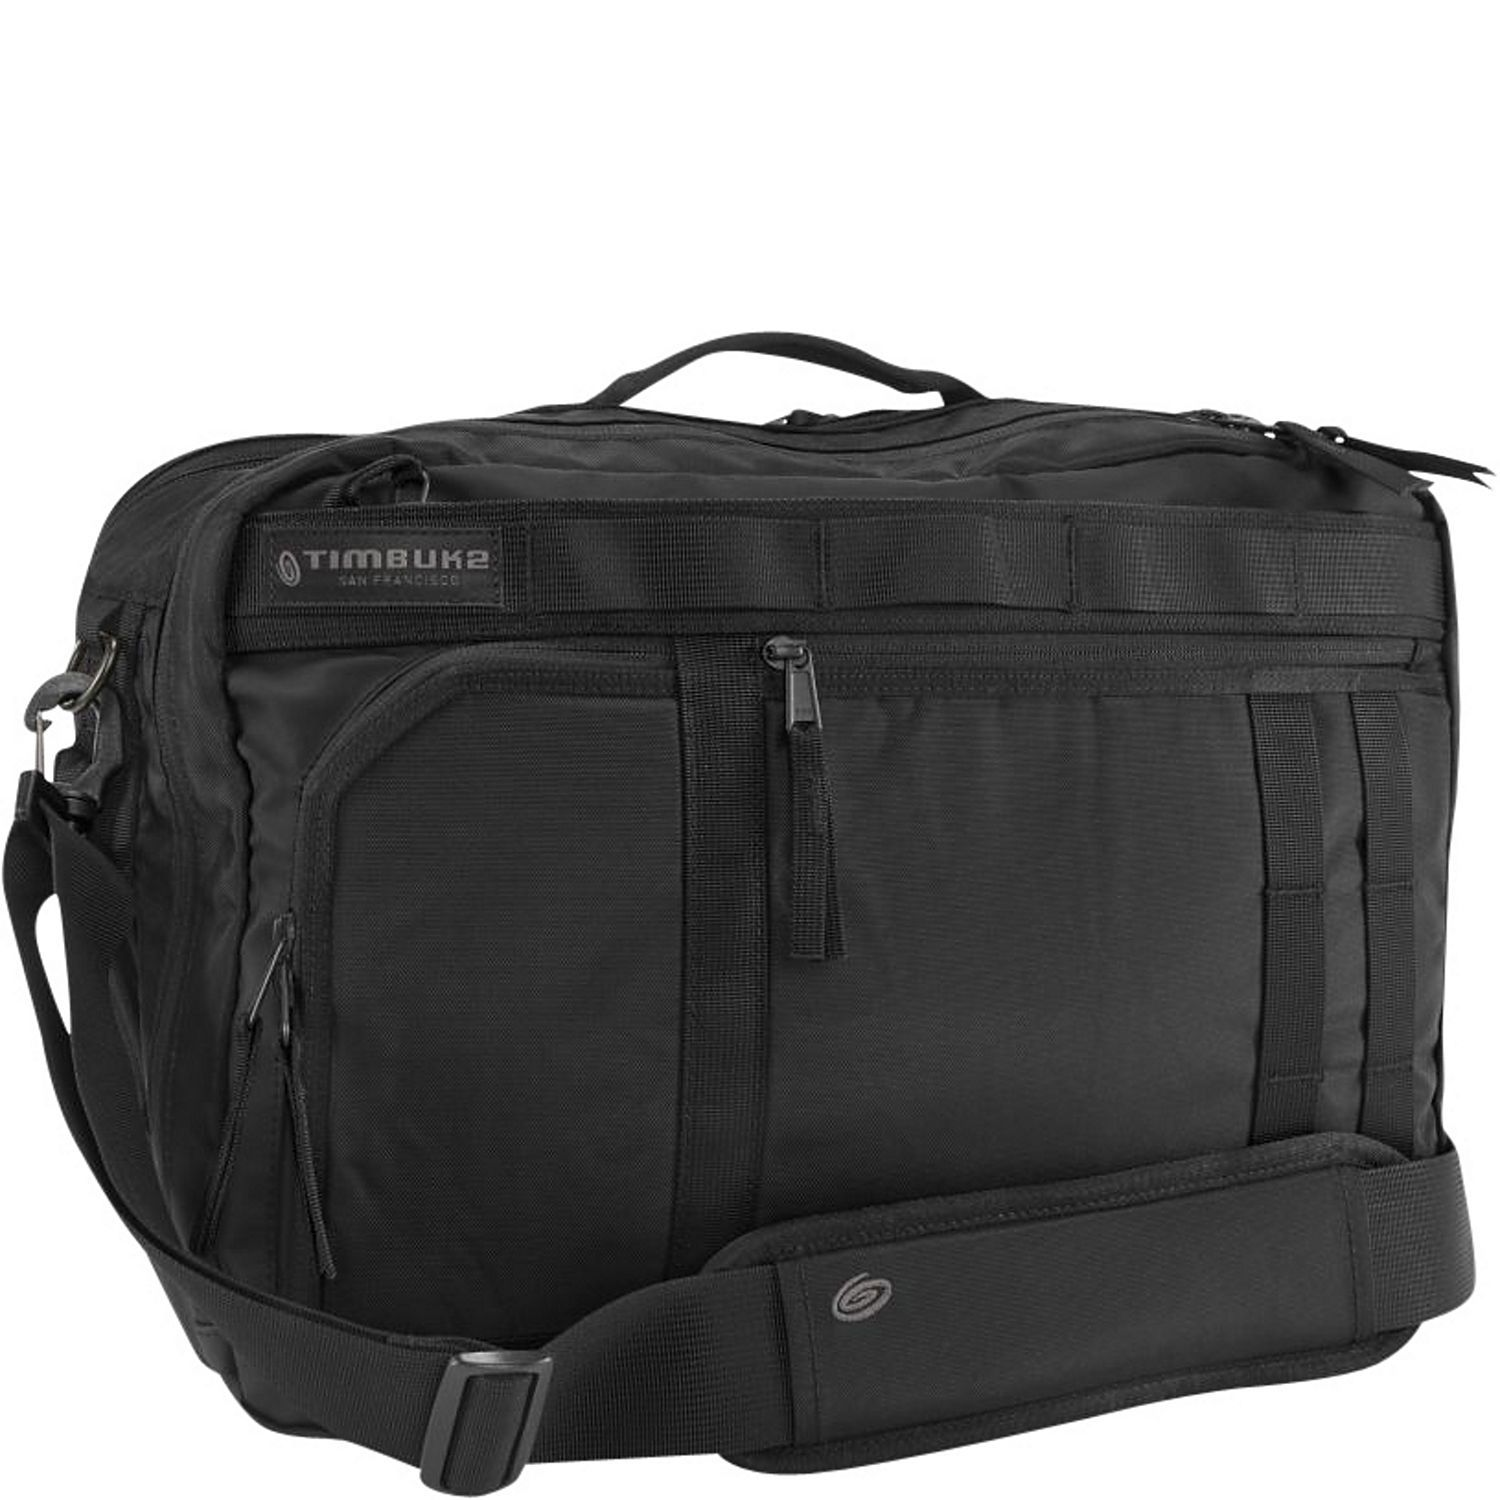 d2dac6a4a95 Buy the Timbuk2 Ace Backpack - M at eBags - Navigate the urban jungle with  your essentials packed inside this versatile backpack from Timbuk2. T